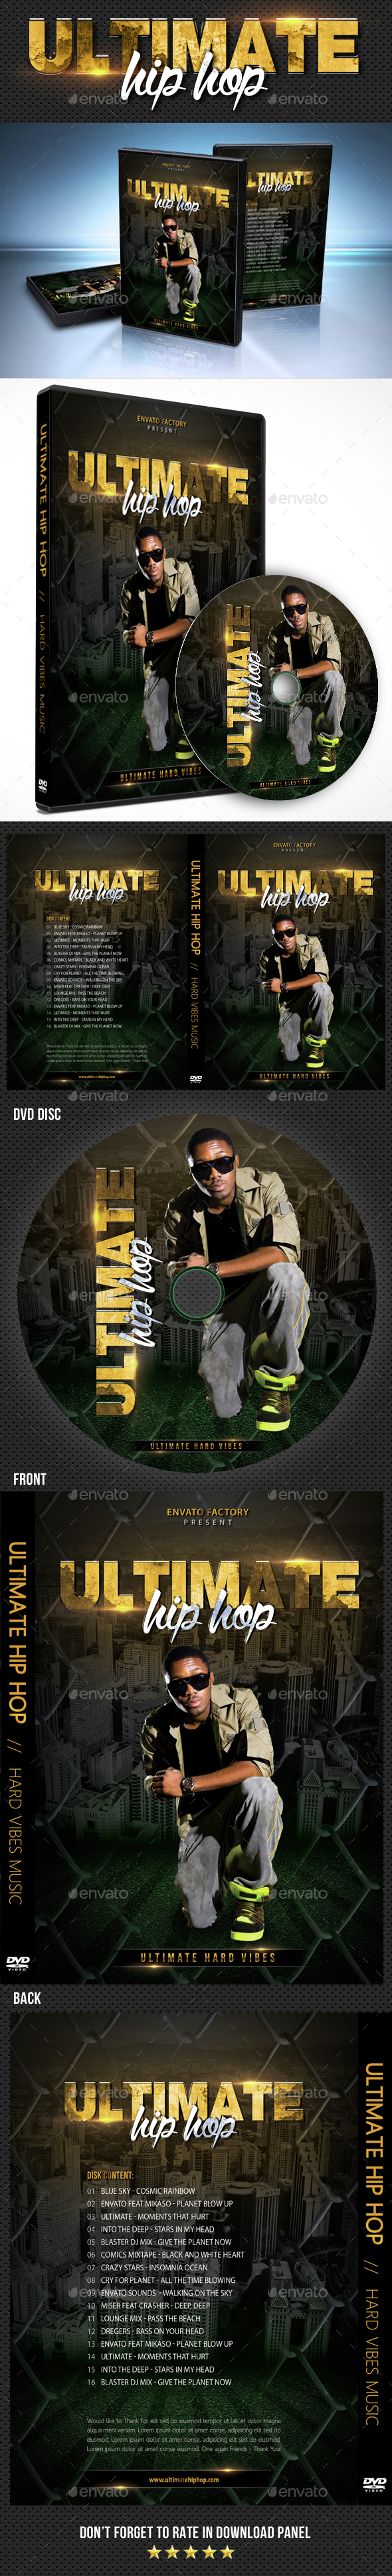 Hip Hop Ultimate Vibes DVD Cover Template - CD & DVD Artwork Print Templates